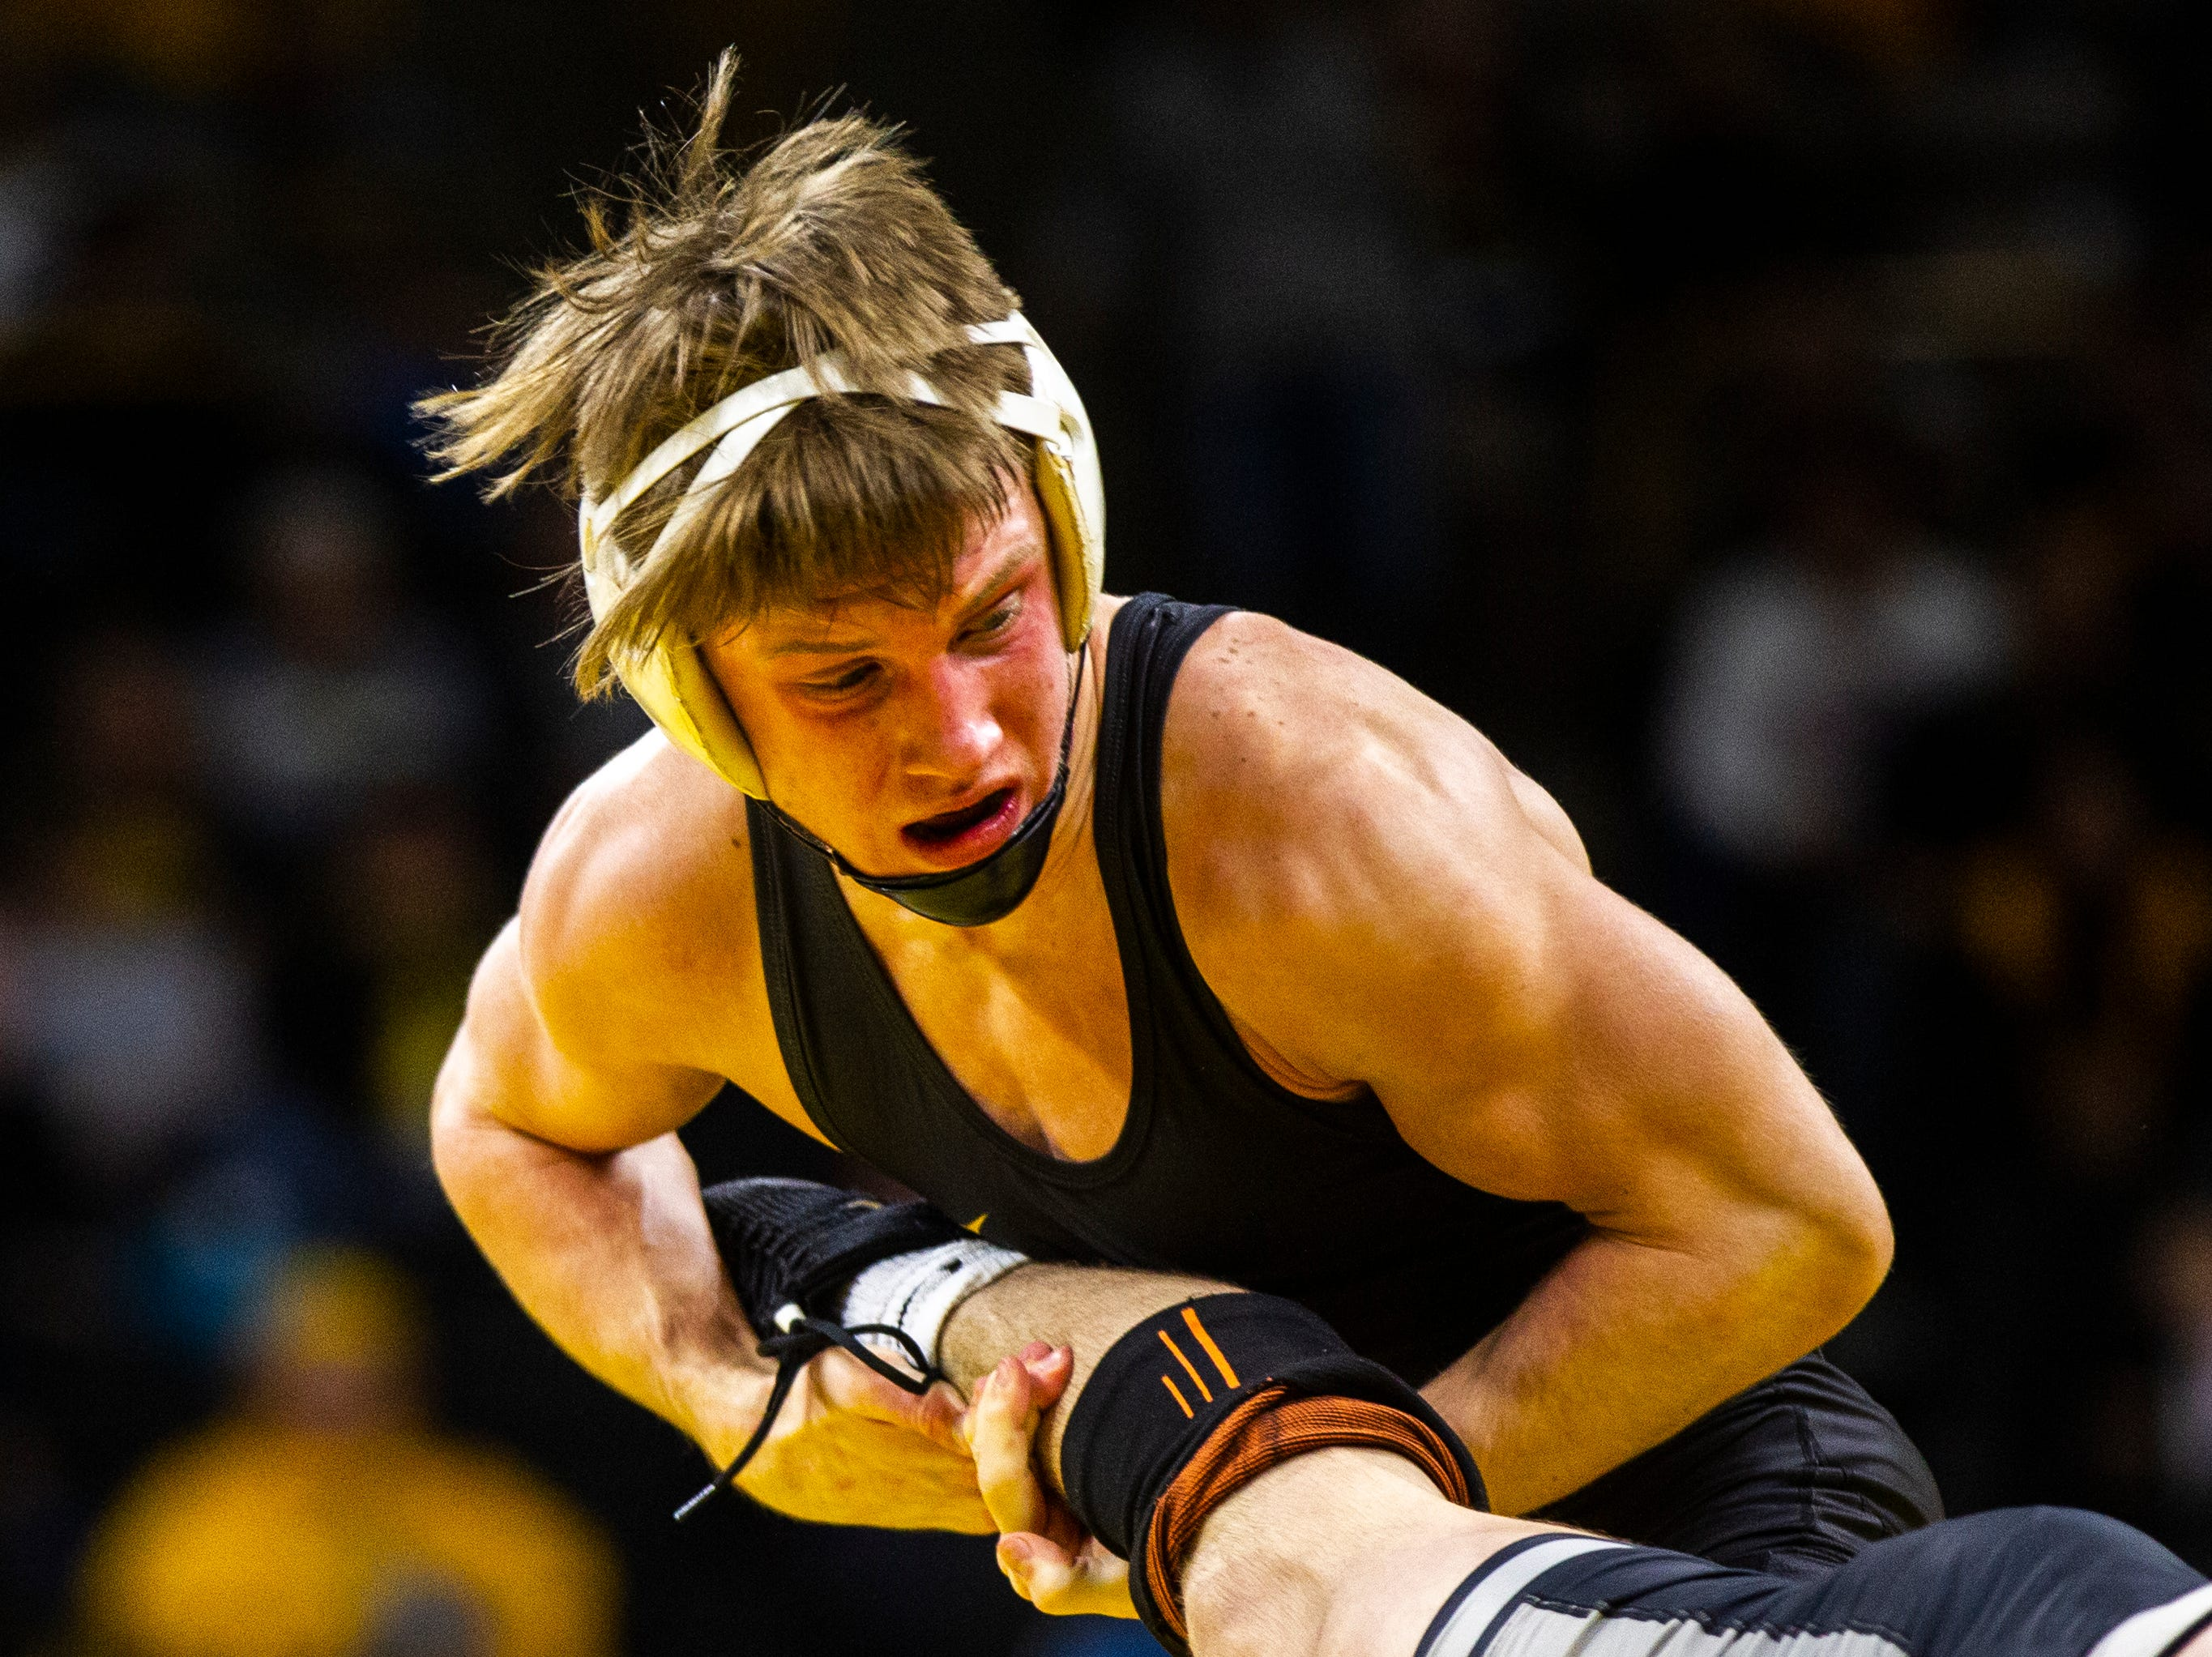 Iowa's Max Murin wrestles Purdue's Nate Limmex at 141 during a Big Ten Conference NCAA wrestling dual on Saturday, Nov. 24, 2018, at Carver-Hawkeye Arena in Iowa City.